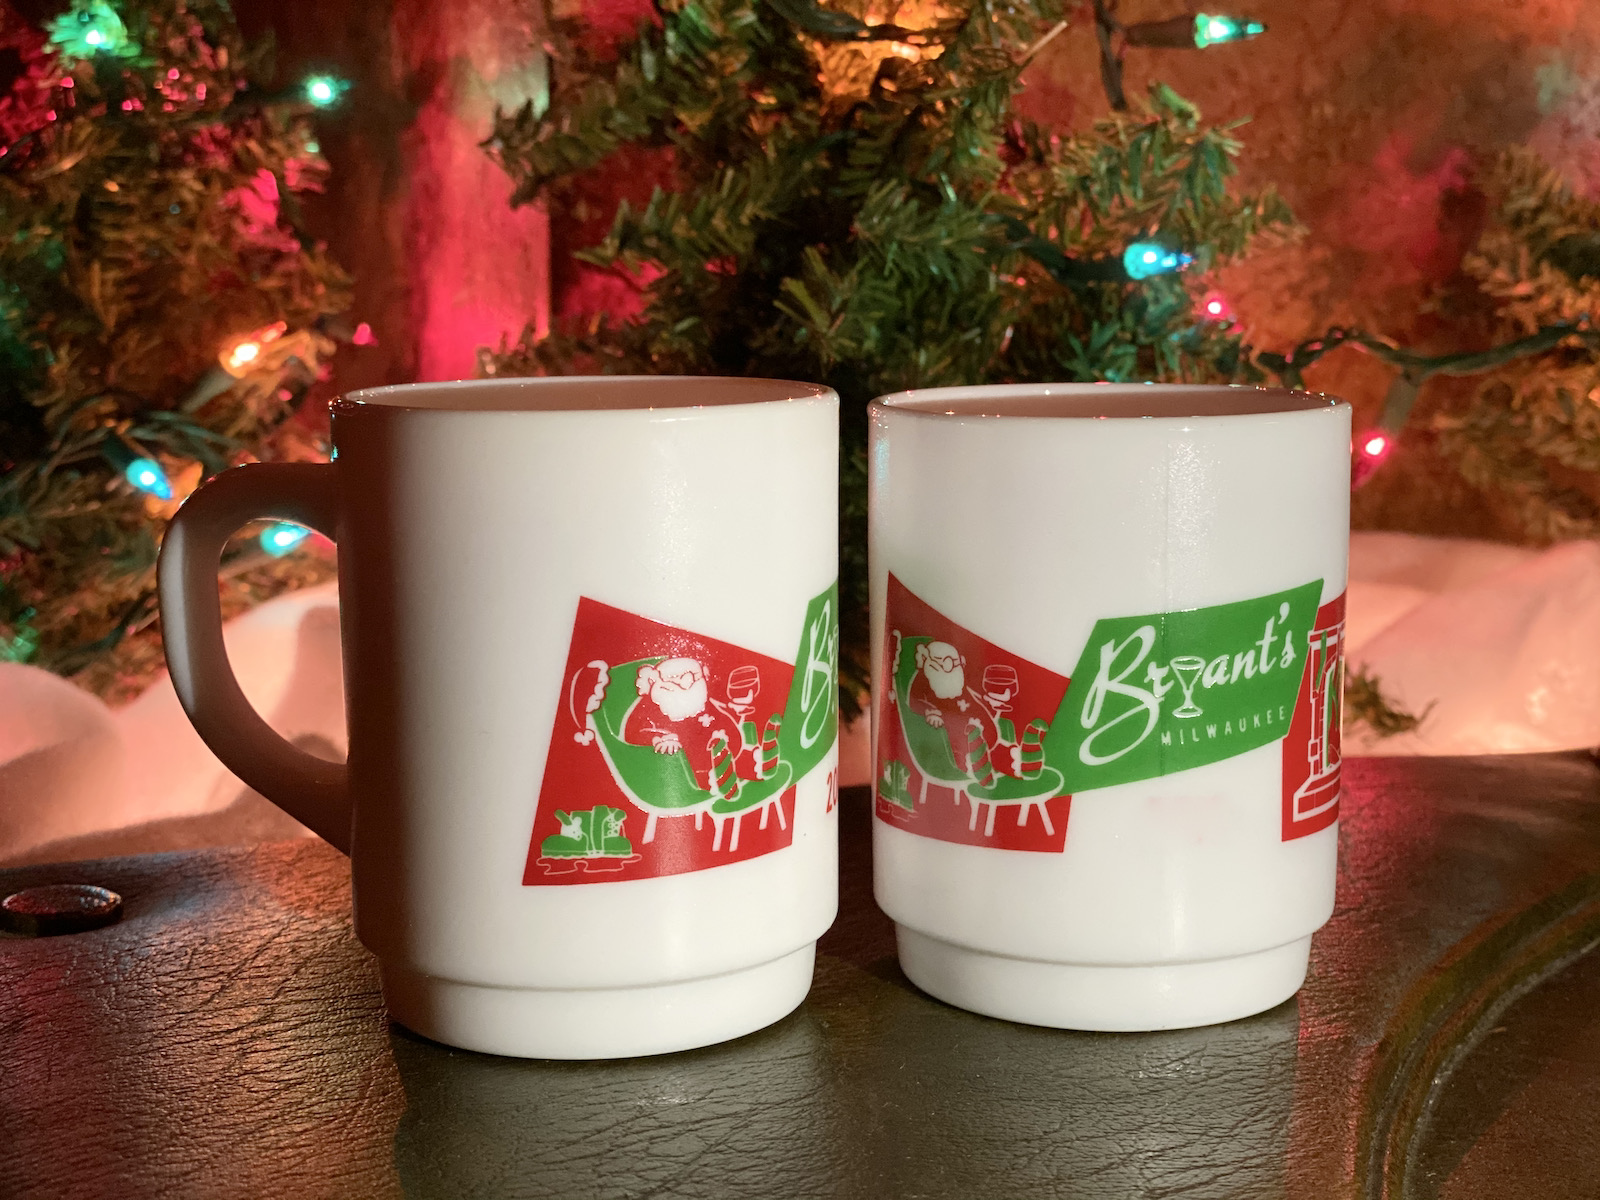 Bryant's Cocktail Lounge's Tom & Jerry mugs